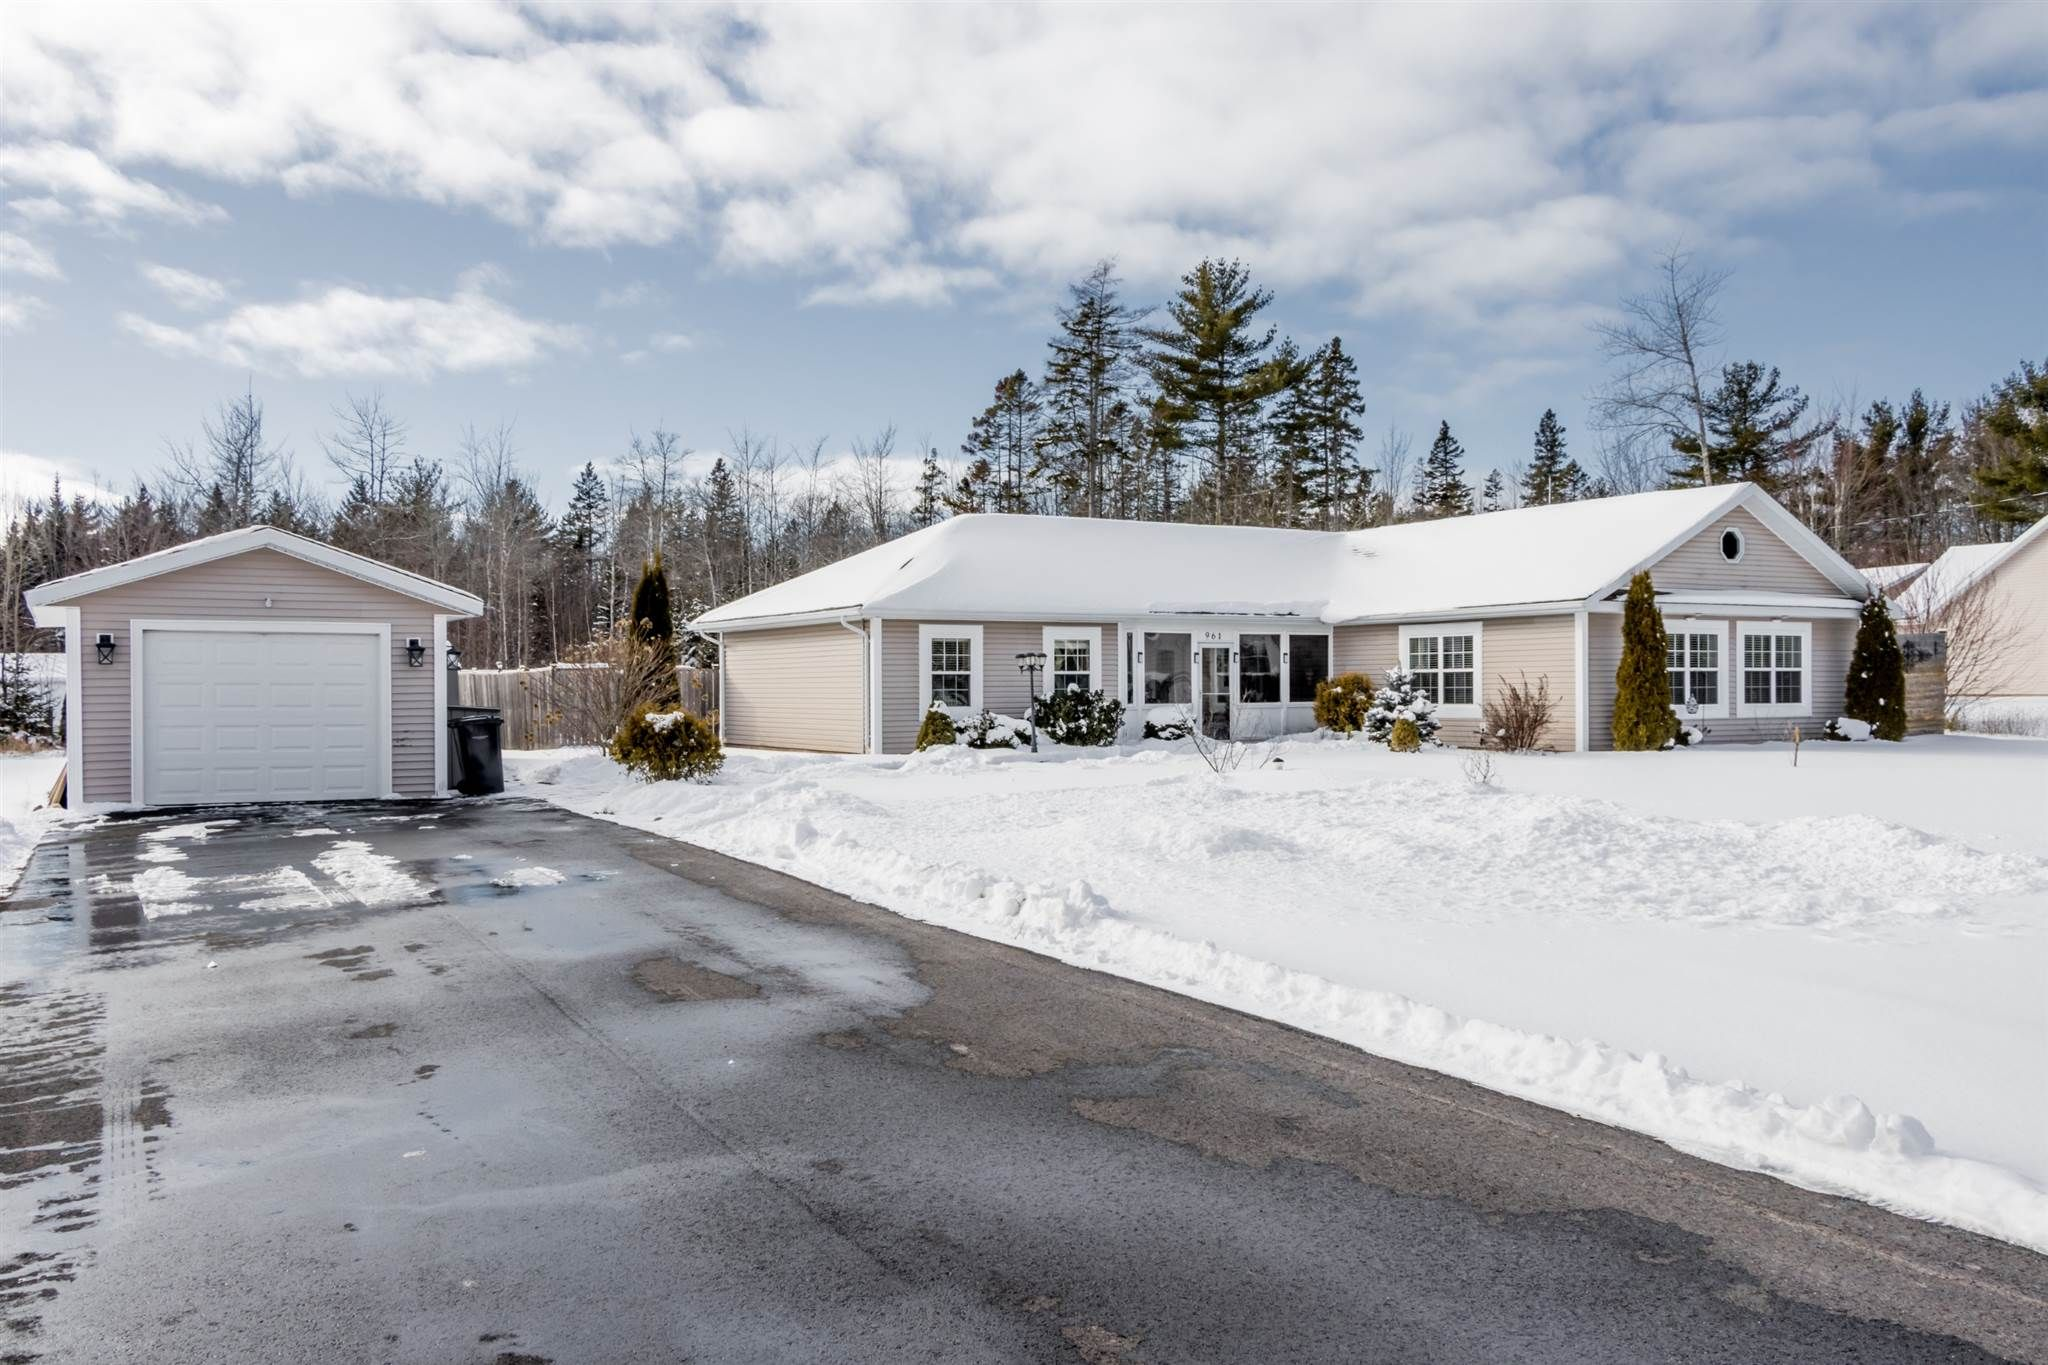 Main Photo: 961 Bradley Street in Wilmot: 400-Annapolis County Residential for sale (Annapolis Valley)  : MLS®# 202101232